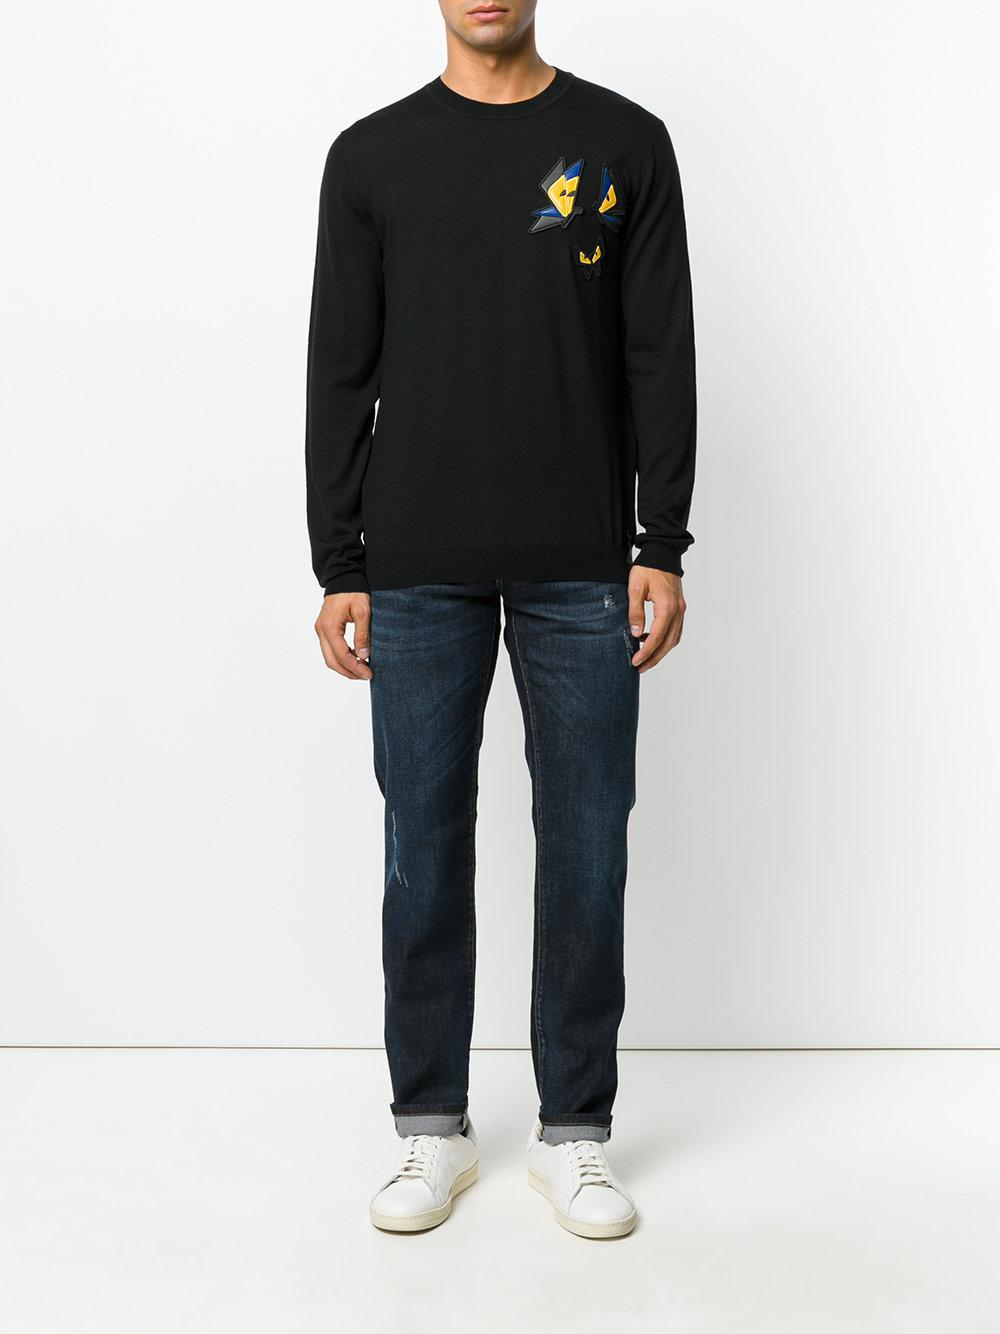 dbcdceeb90e Gallery. Previously sold at  Farfetch · Men s Pink Sweatshirts ...